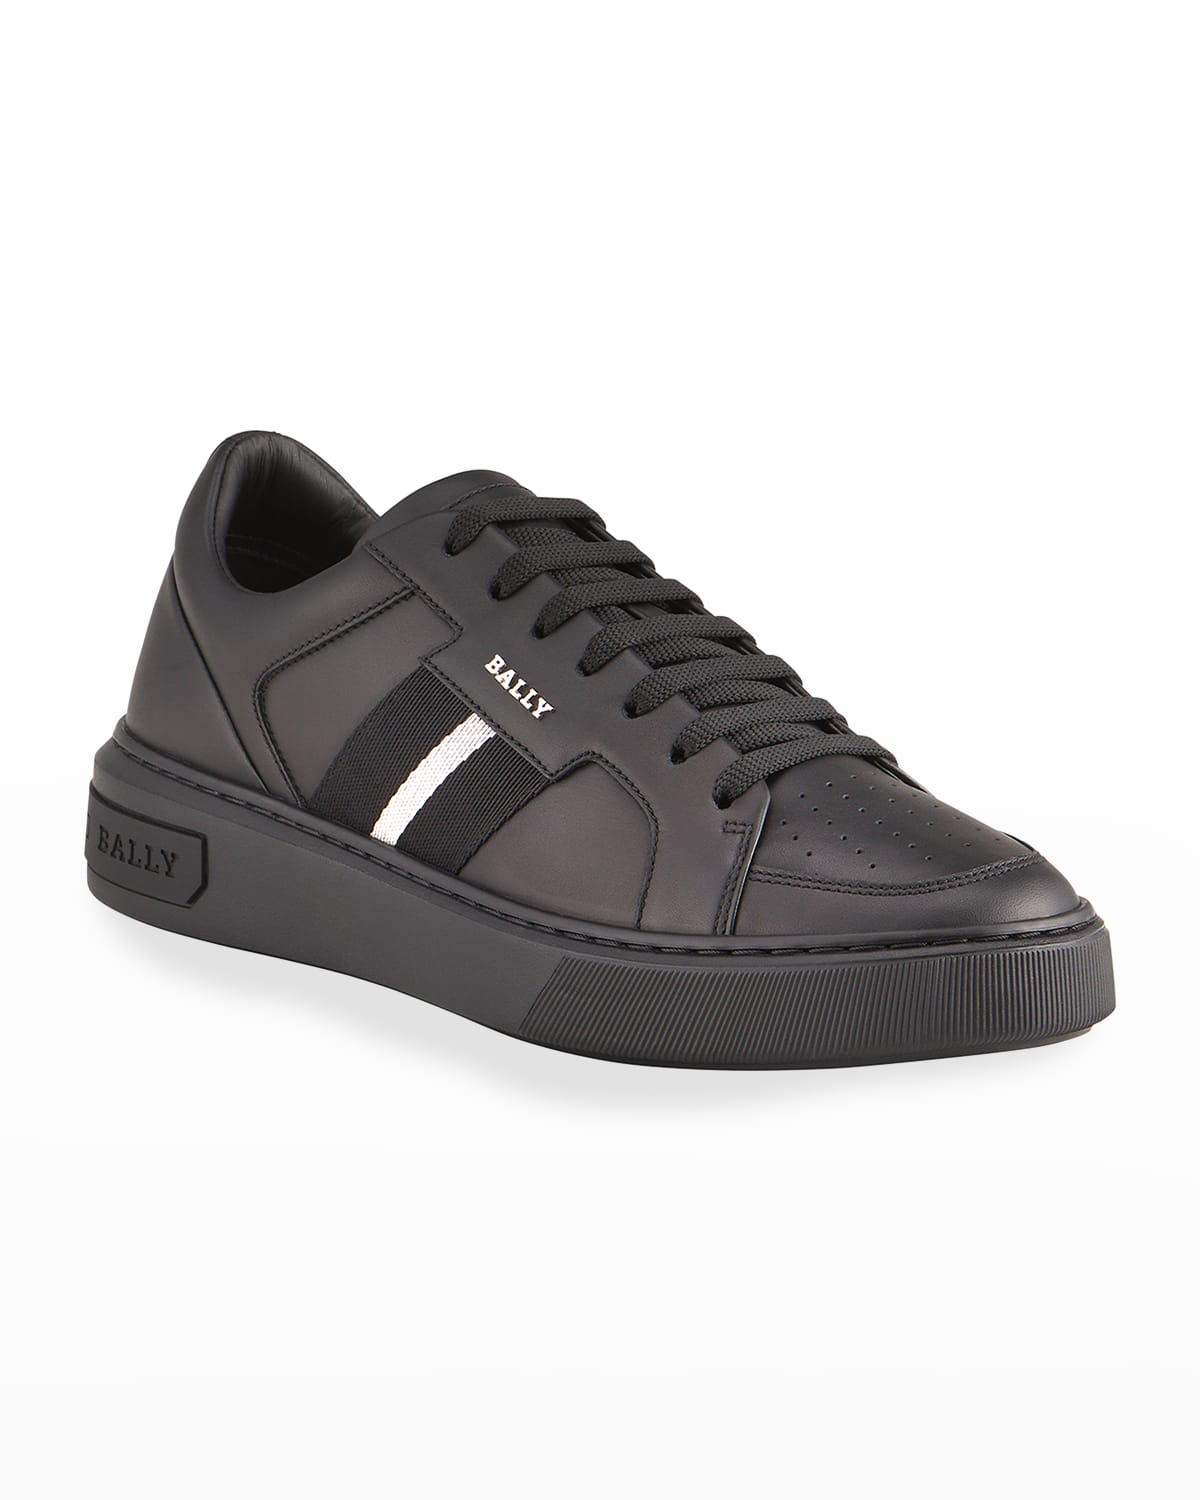 Men's Moony 00 Bicolor Trainspotting Leather Low-Top Sneakers